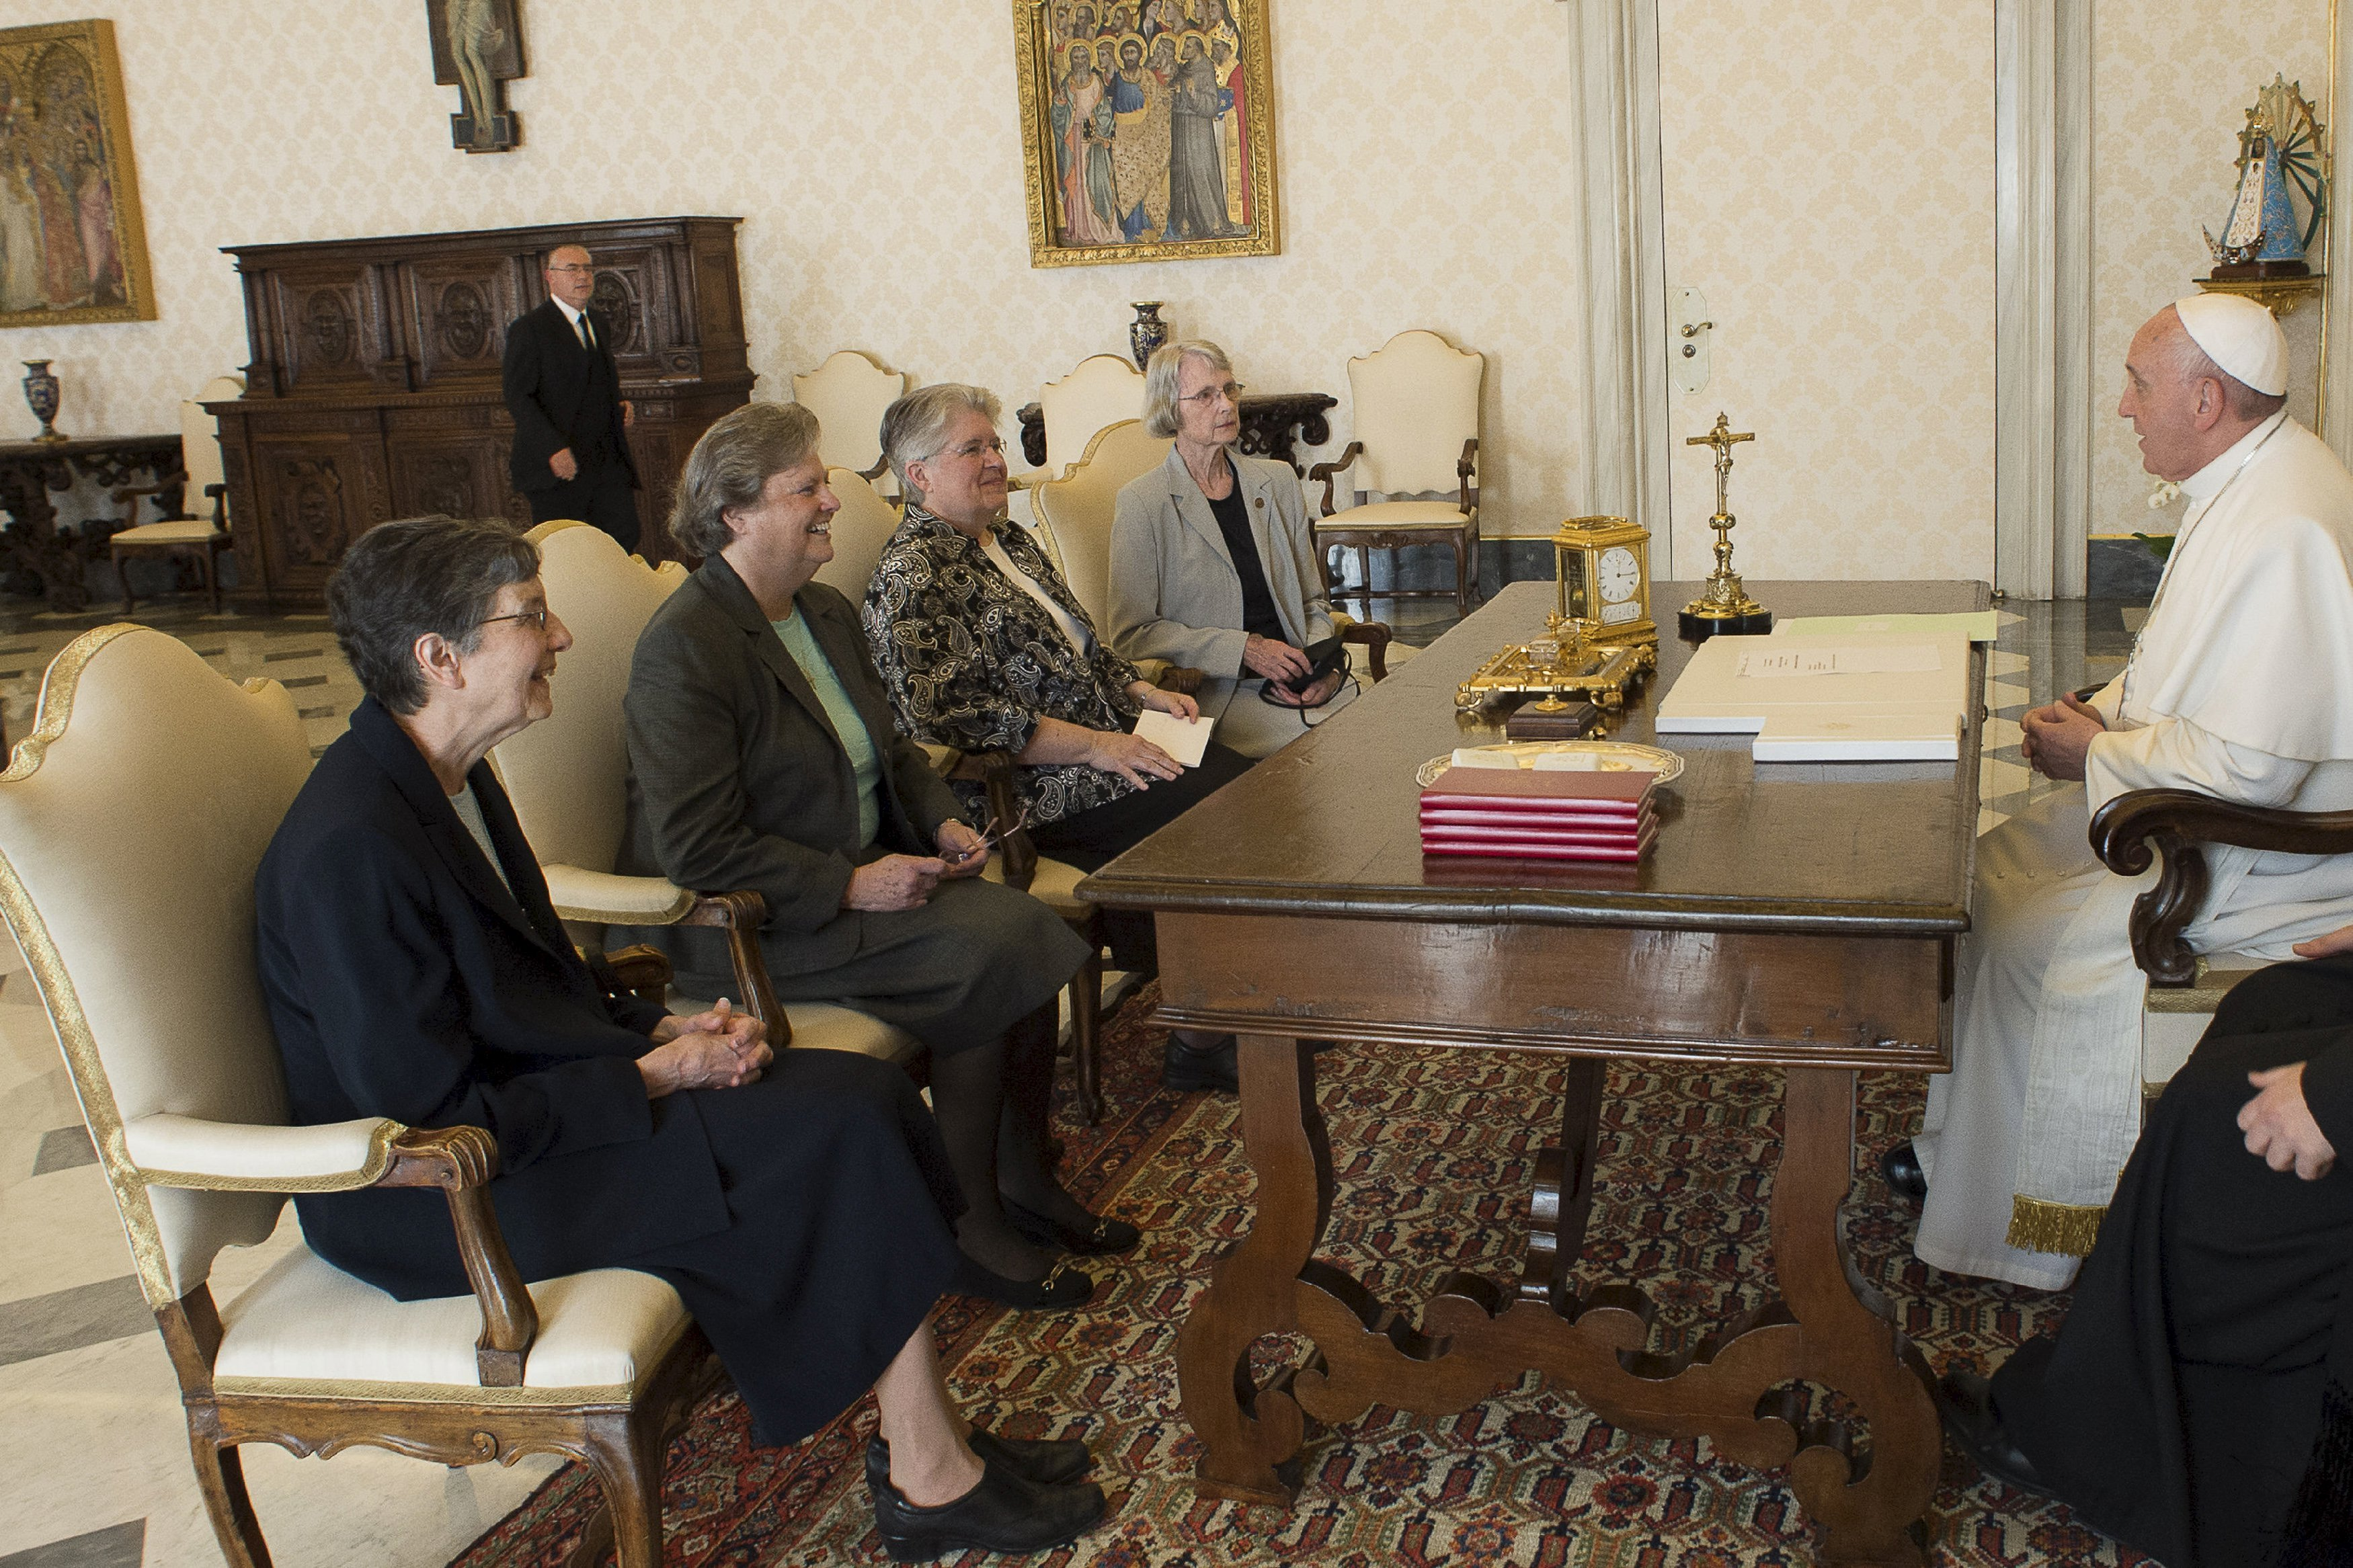 Pope Francis meets members of Leadership Conference of Women Religious (LCWR) during a private audience in the pontiff's studio at the Vatican on April 16, 2015.